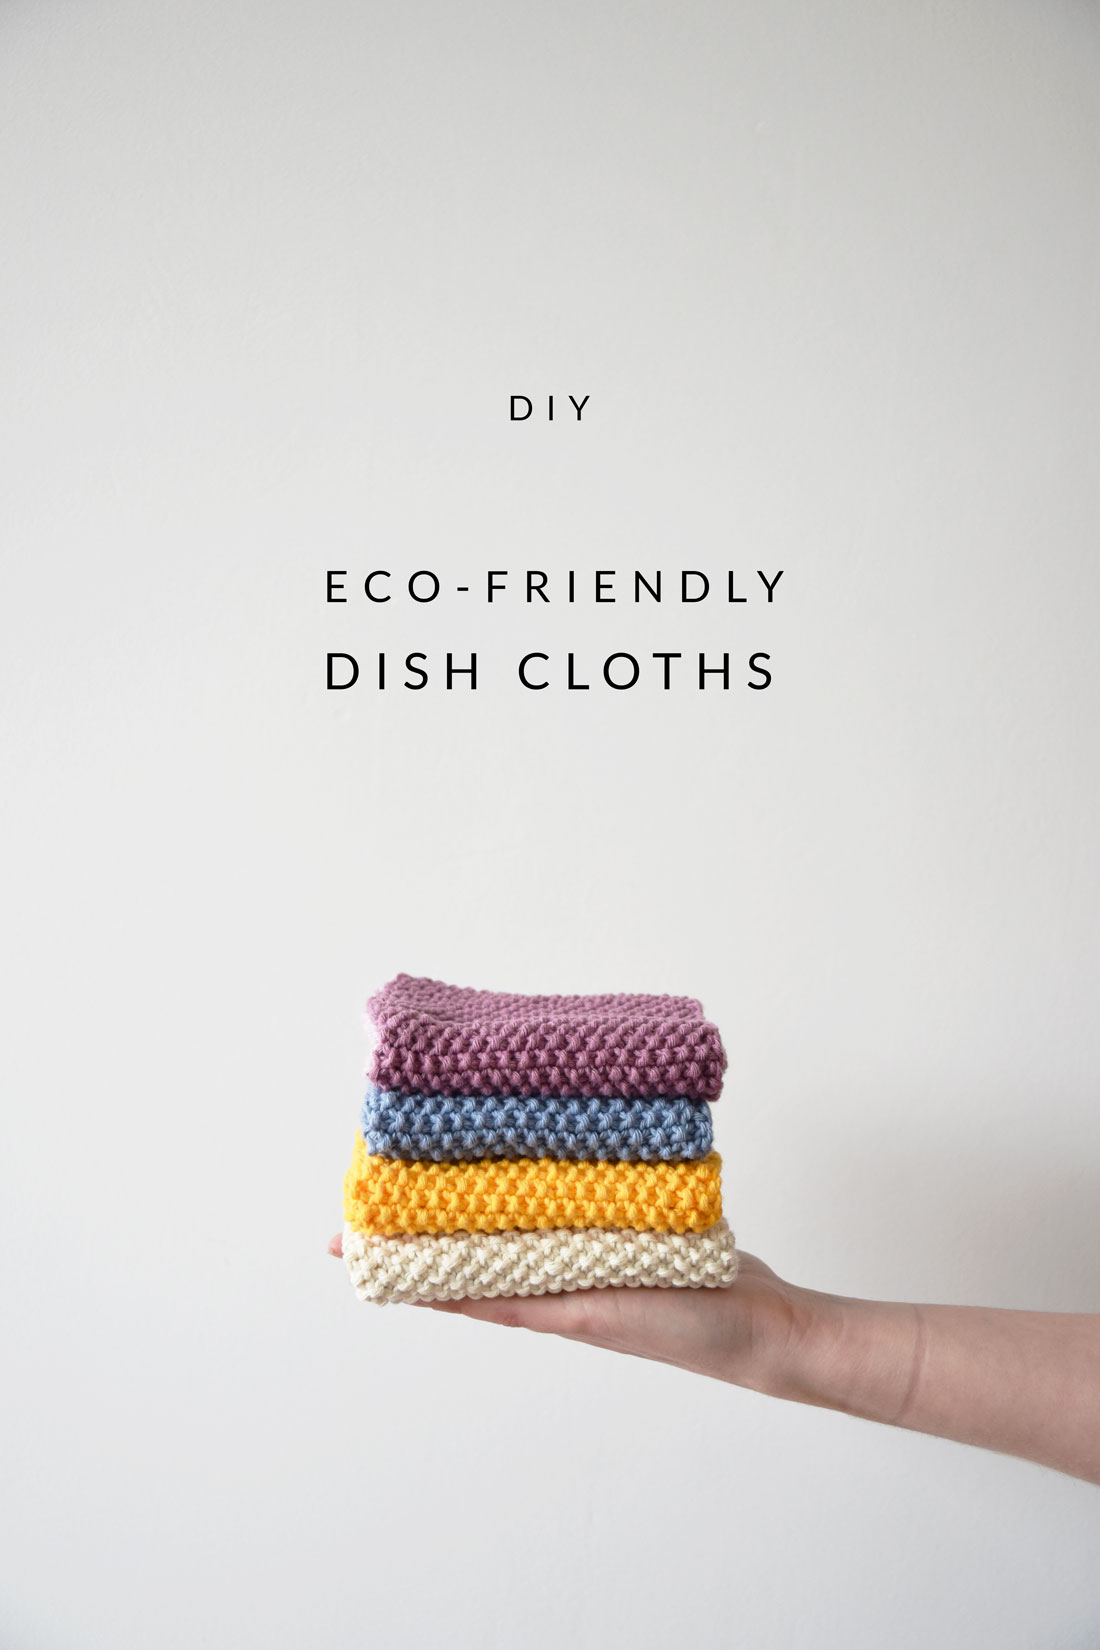 DIY Eco-friendly Dish Cloth